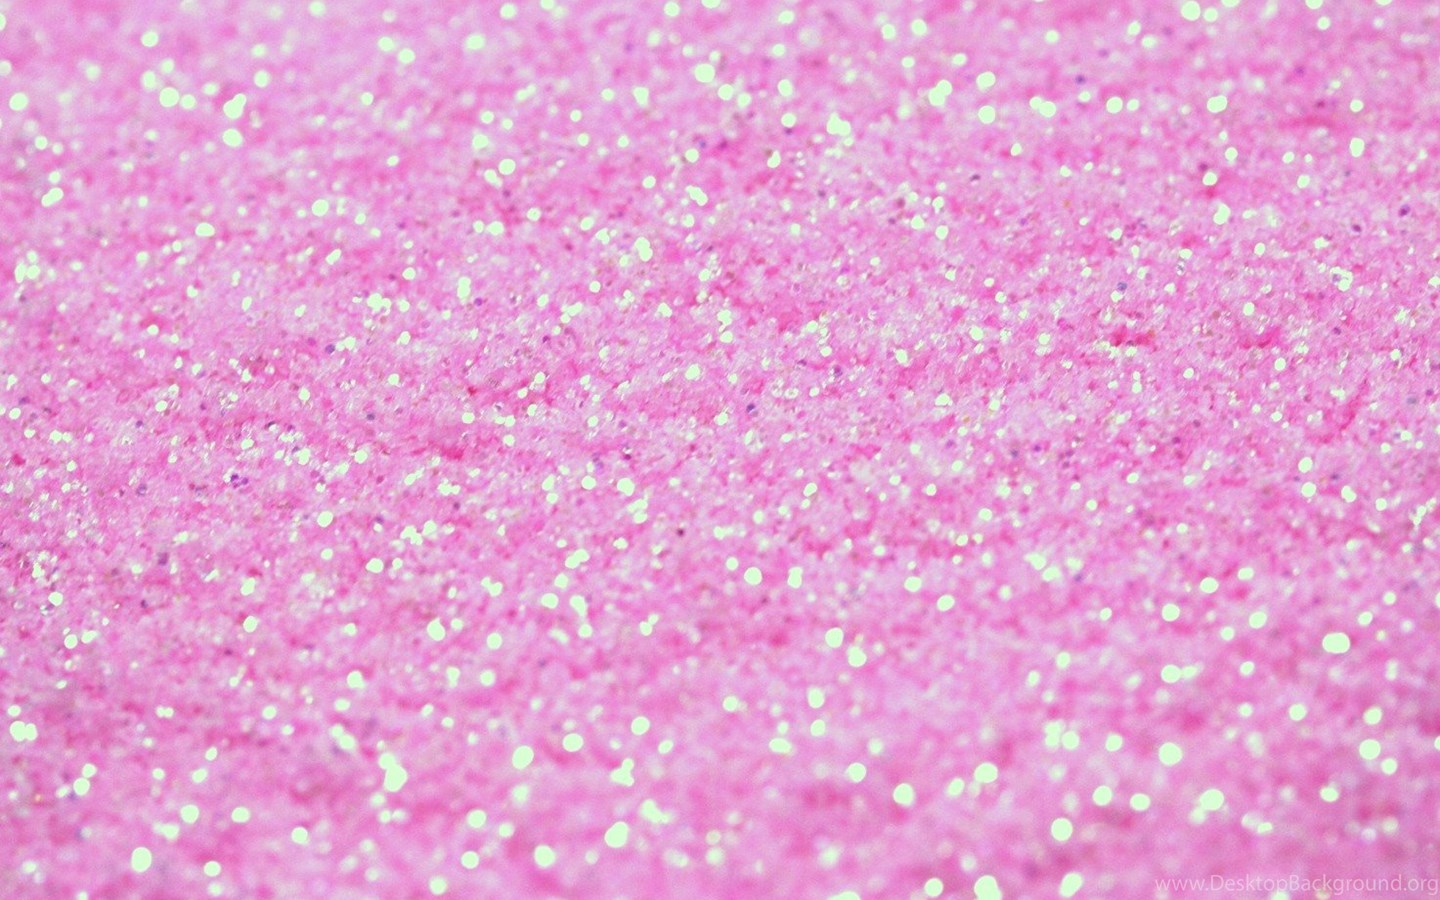 Pink Glitter | Pink wallpaper iphone, Glitter background